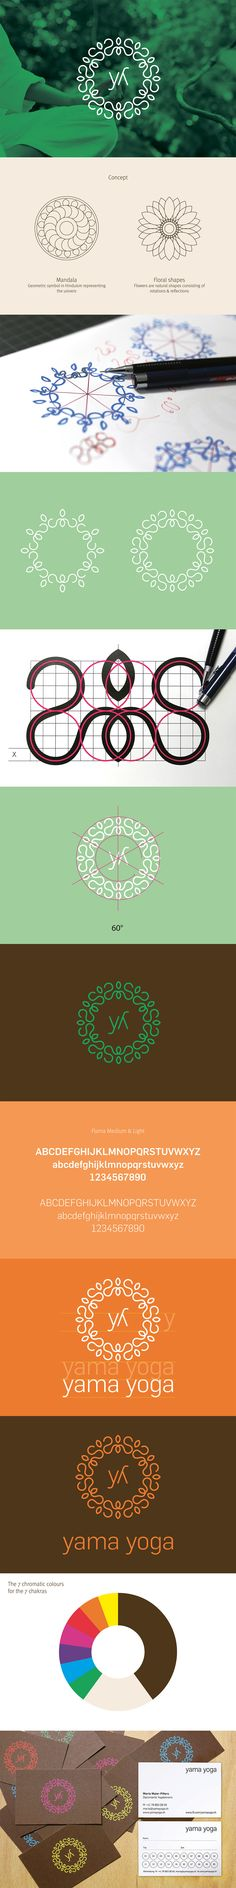 Brand for a yoga studio. It represents the typical elements such as mandalas and flowers and plays with the seven chromatic colors for the seven chakras.